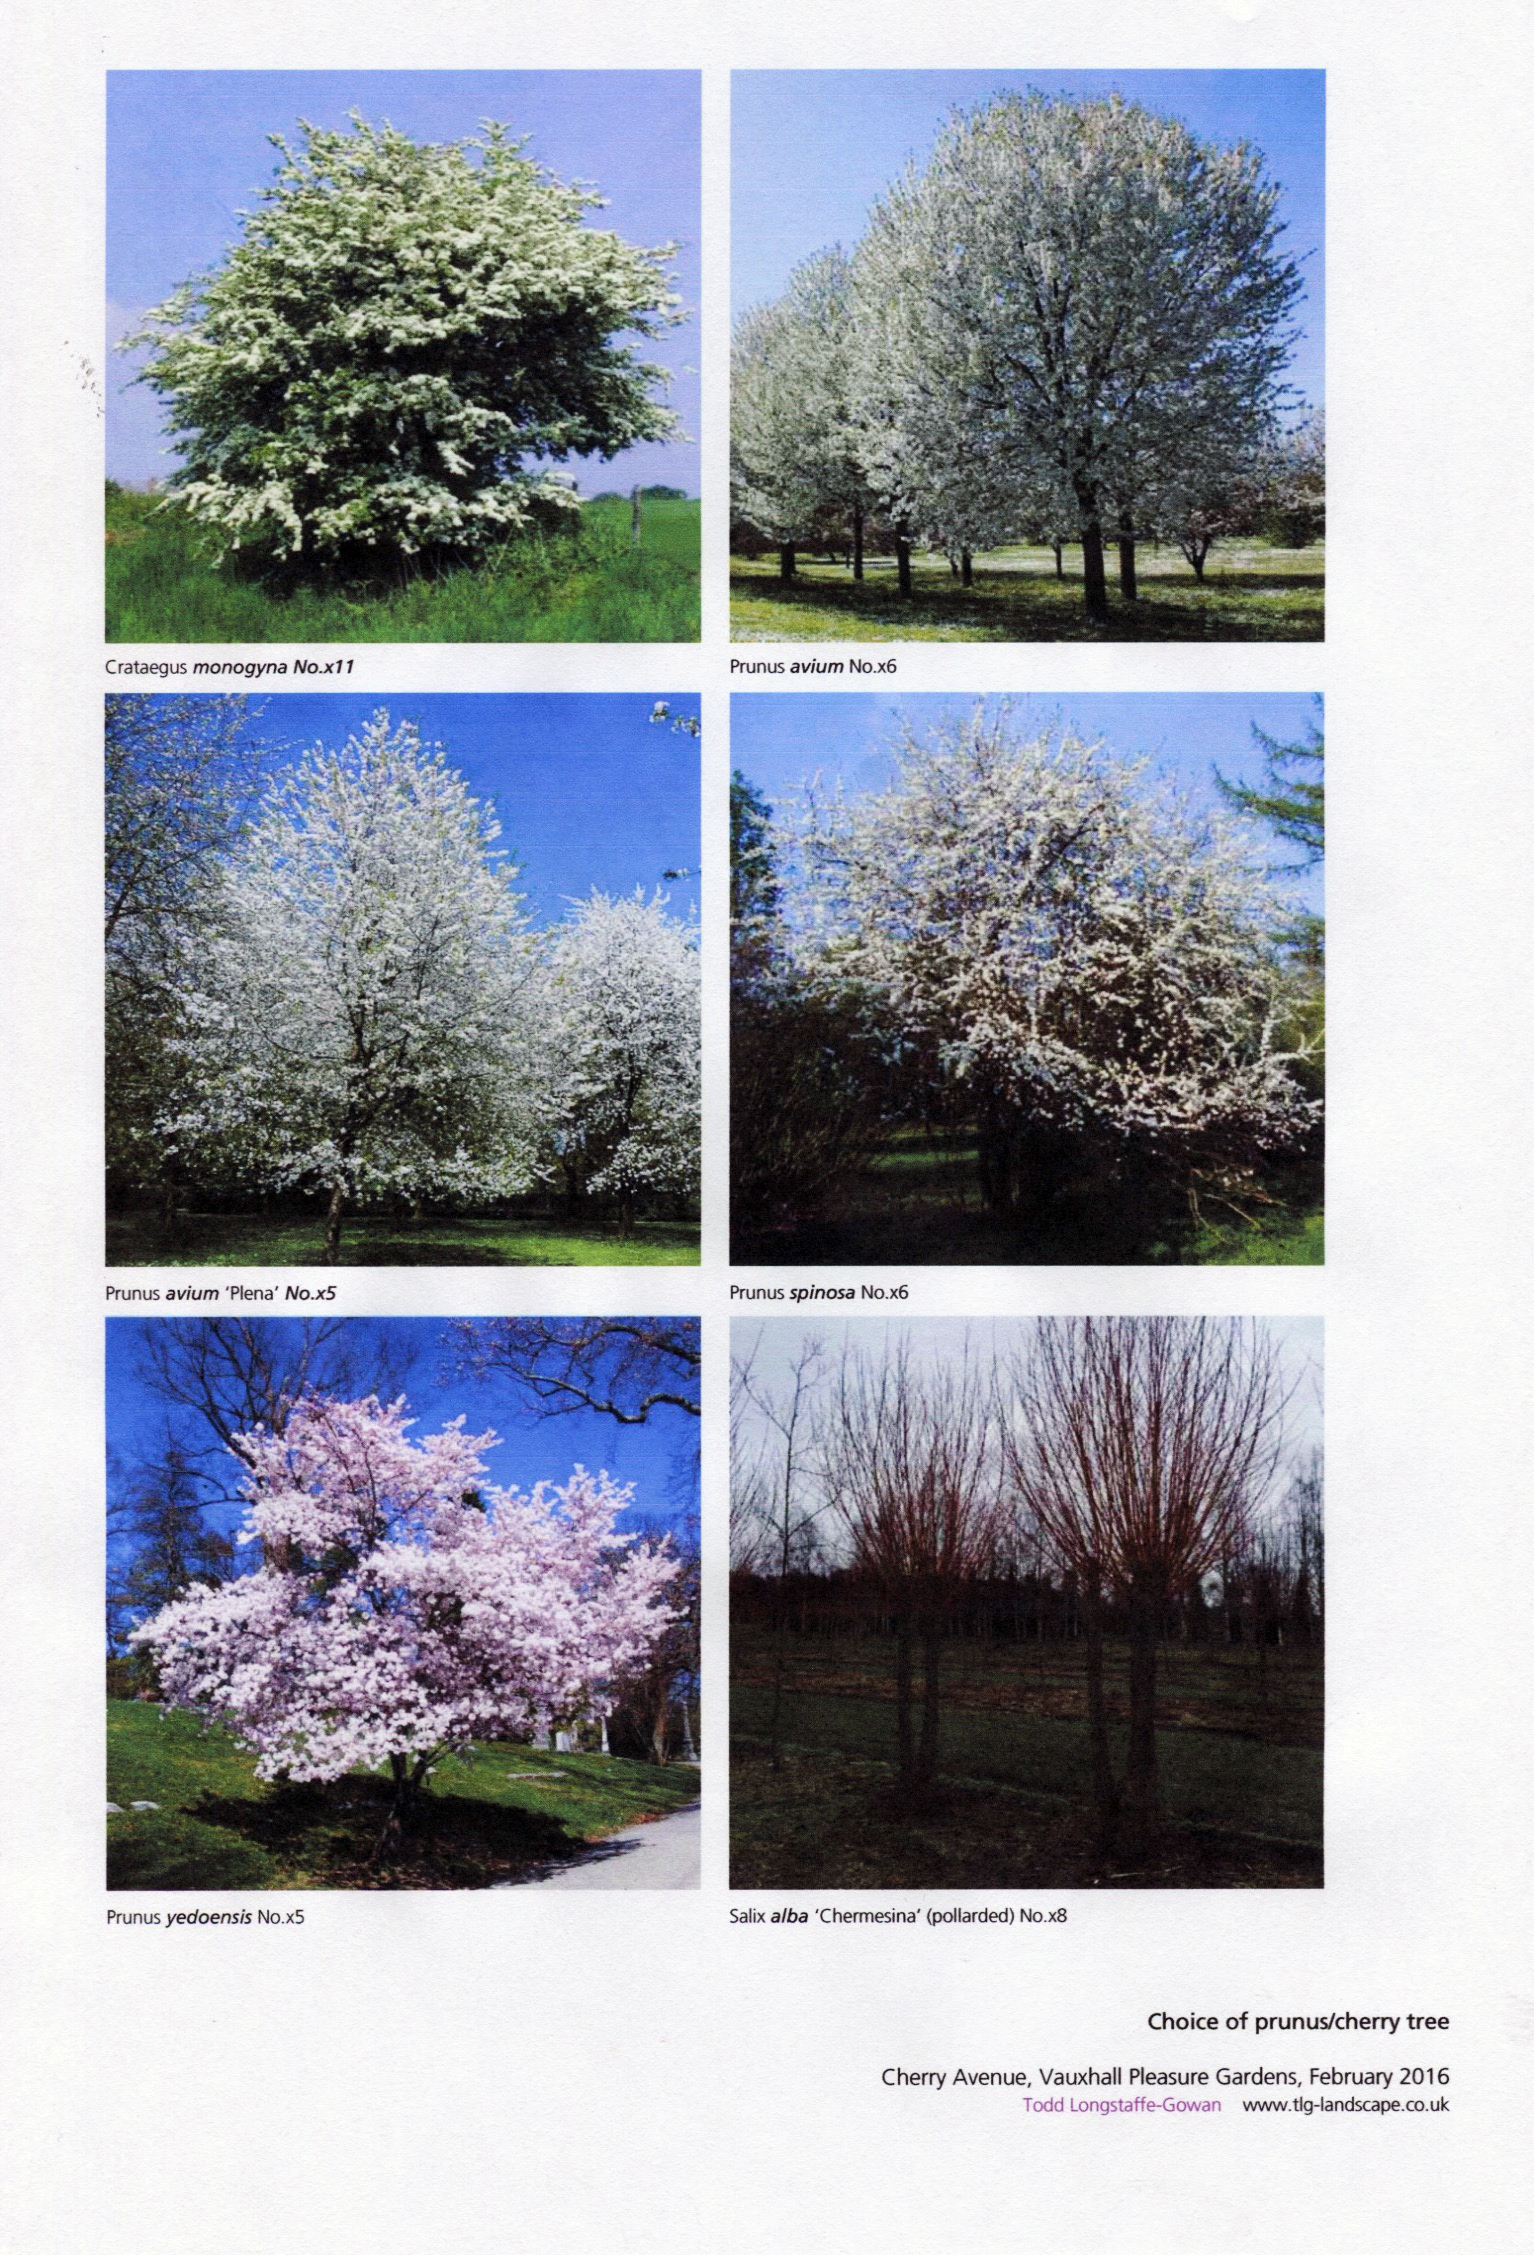 Proposed various tree varieties